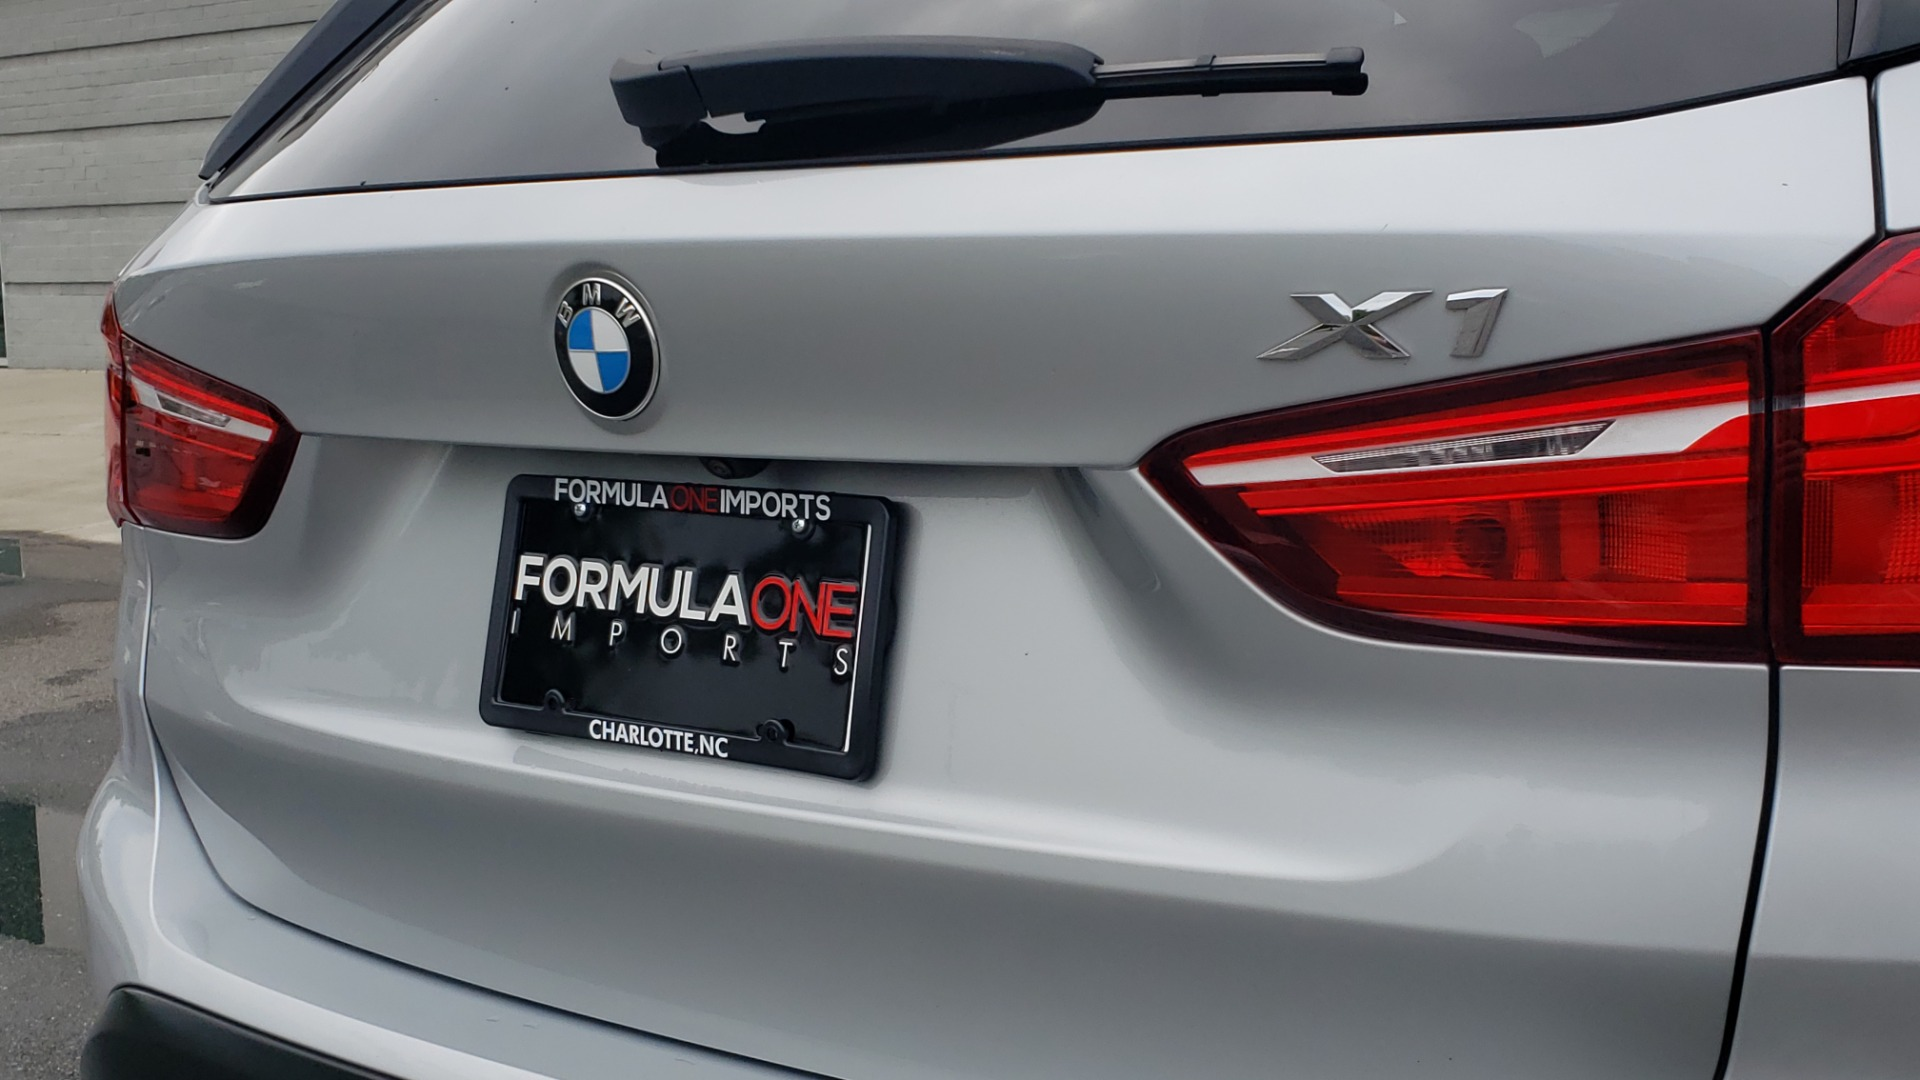 Used 2018 BMW X1 XDRIVE38I / NAV / CONV PKG / PANO-ROOF / HTD STS / REARVIEW for sale $28,995 at Formula Imports in Charlotte NC 28227 29